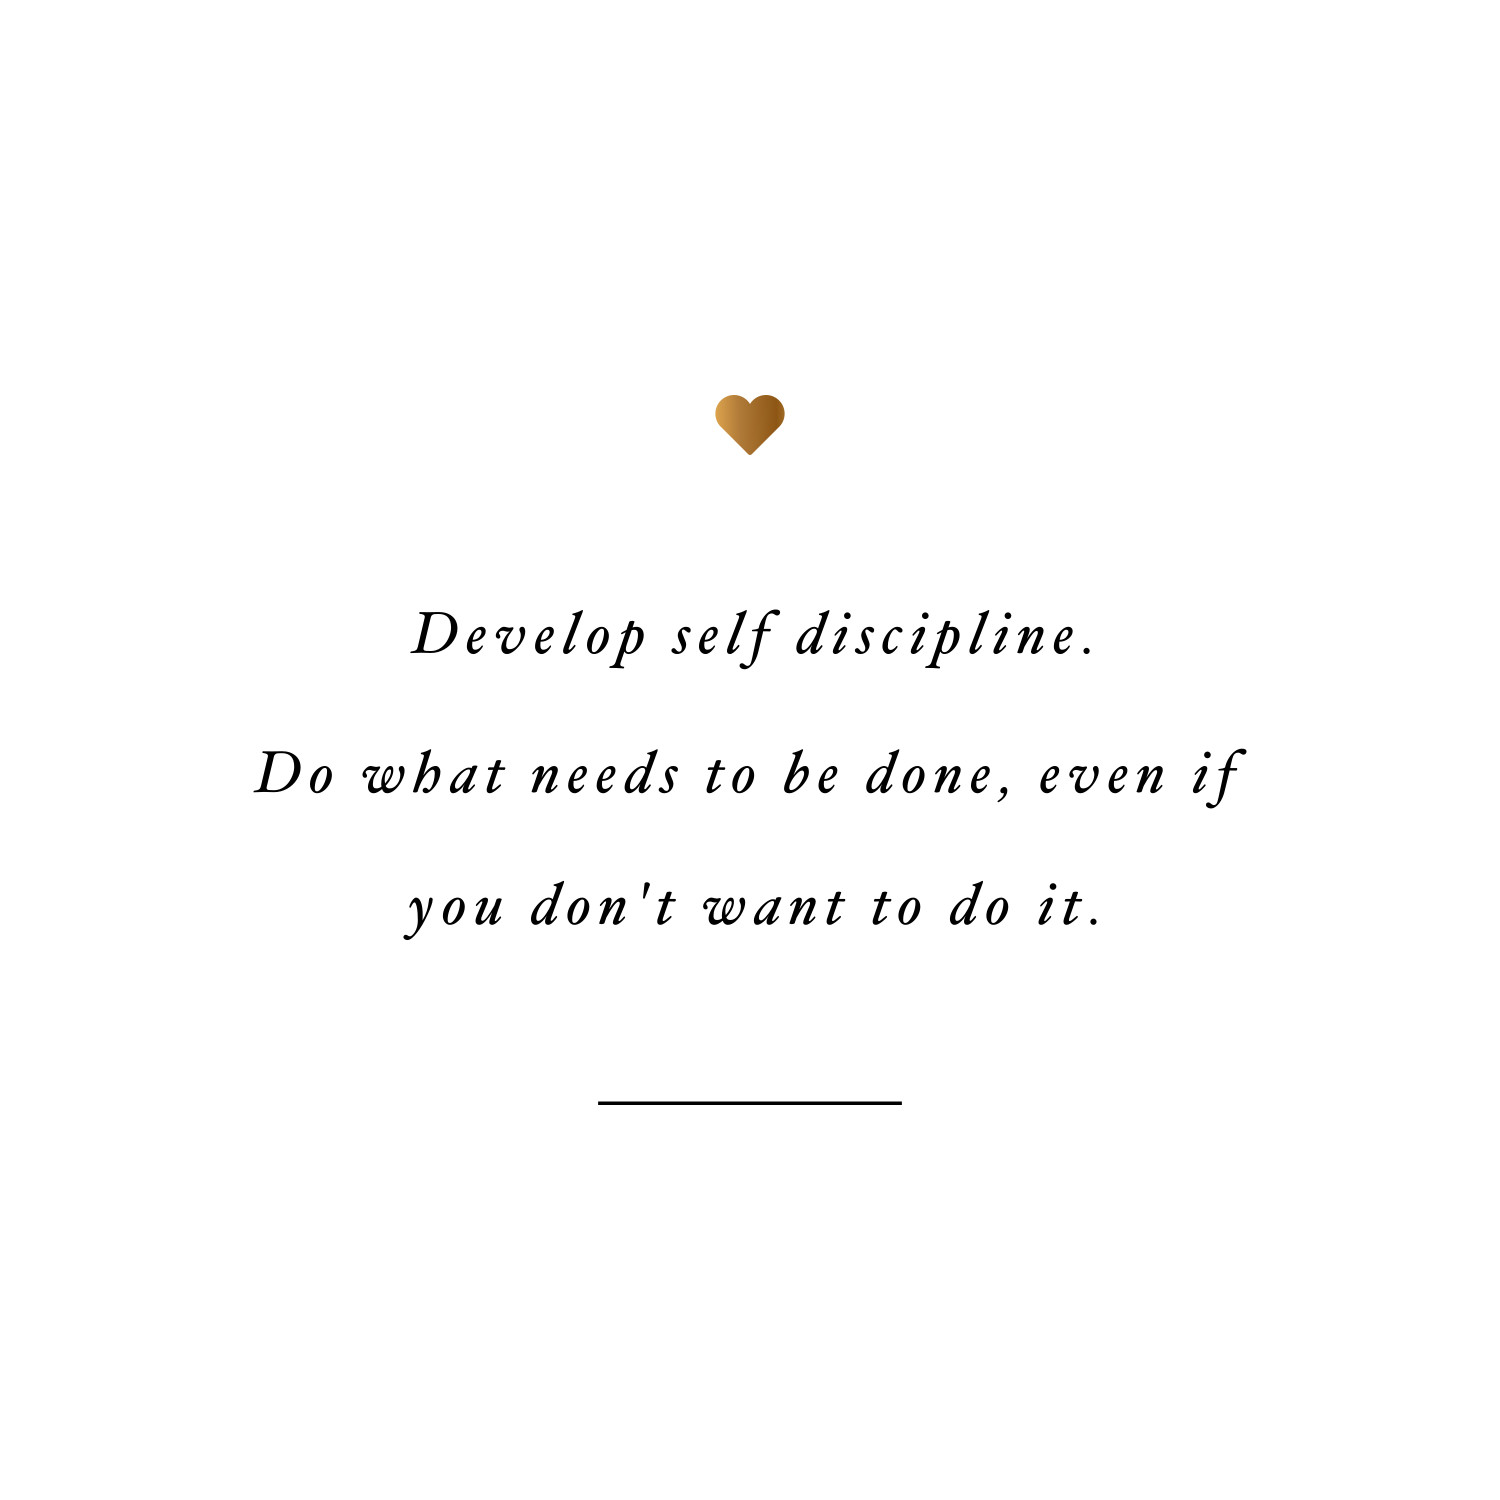 Develop self discipline! Browse our collection of health and fitness inspirational quotes and get instant training motivation. Transform positive thoughts into positive actions and get fit, healthy and happy! https://www.spotebi.com/workout-motivation/develop-self-discipline-health-and-fitness-inspirational-quote/